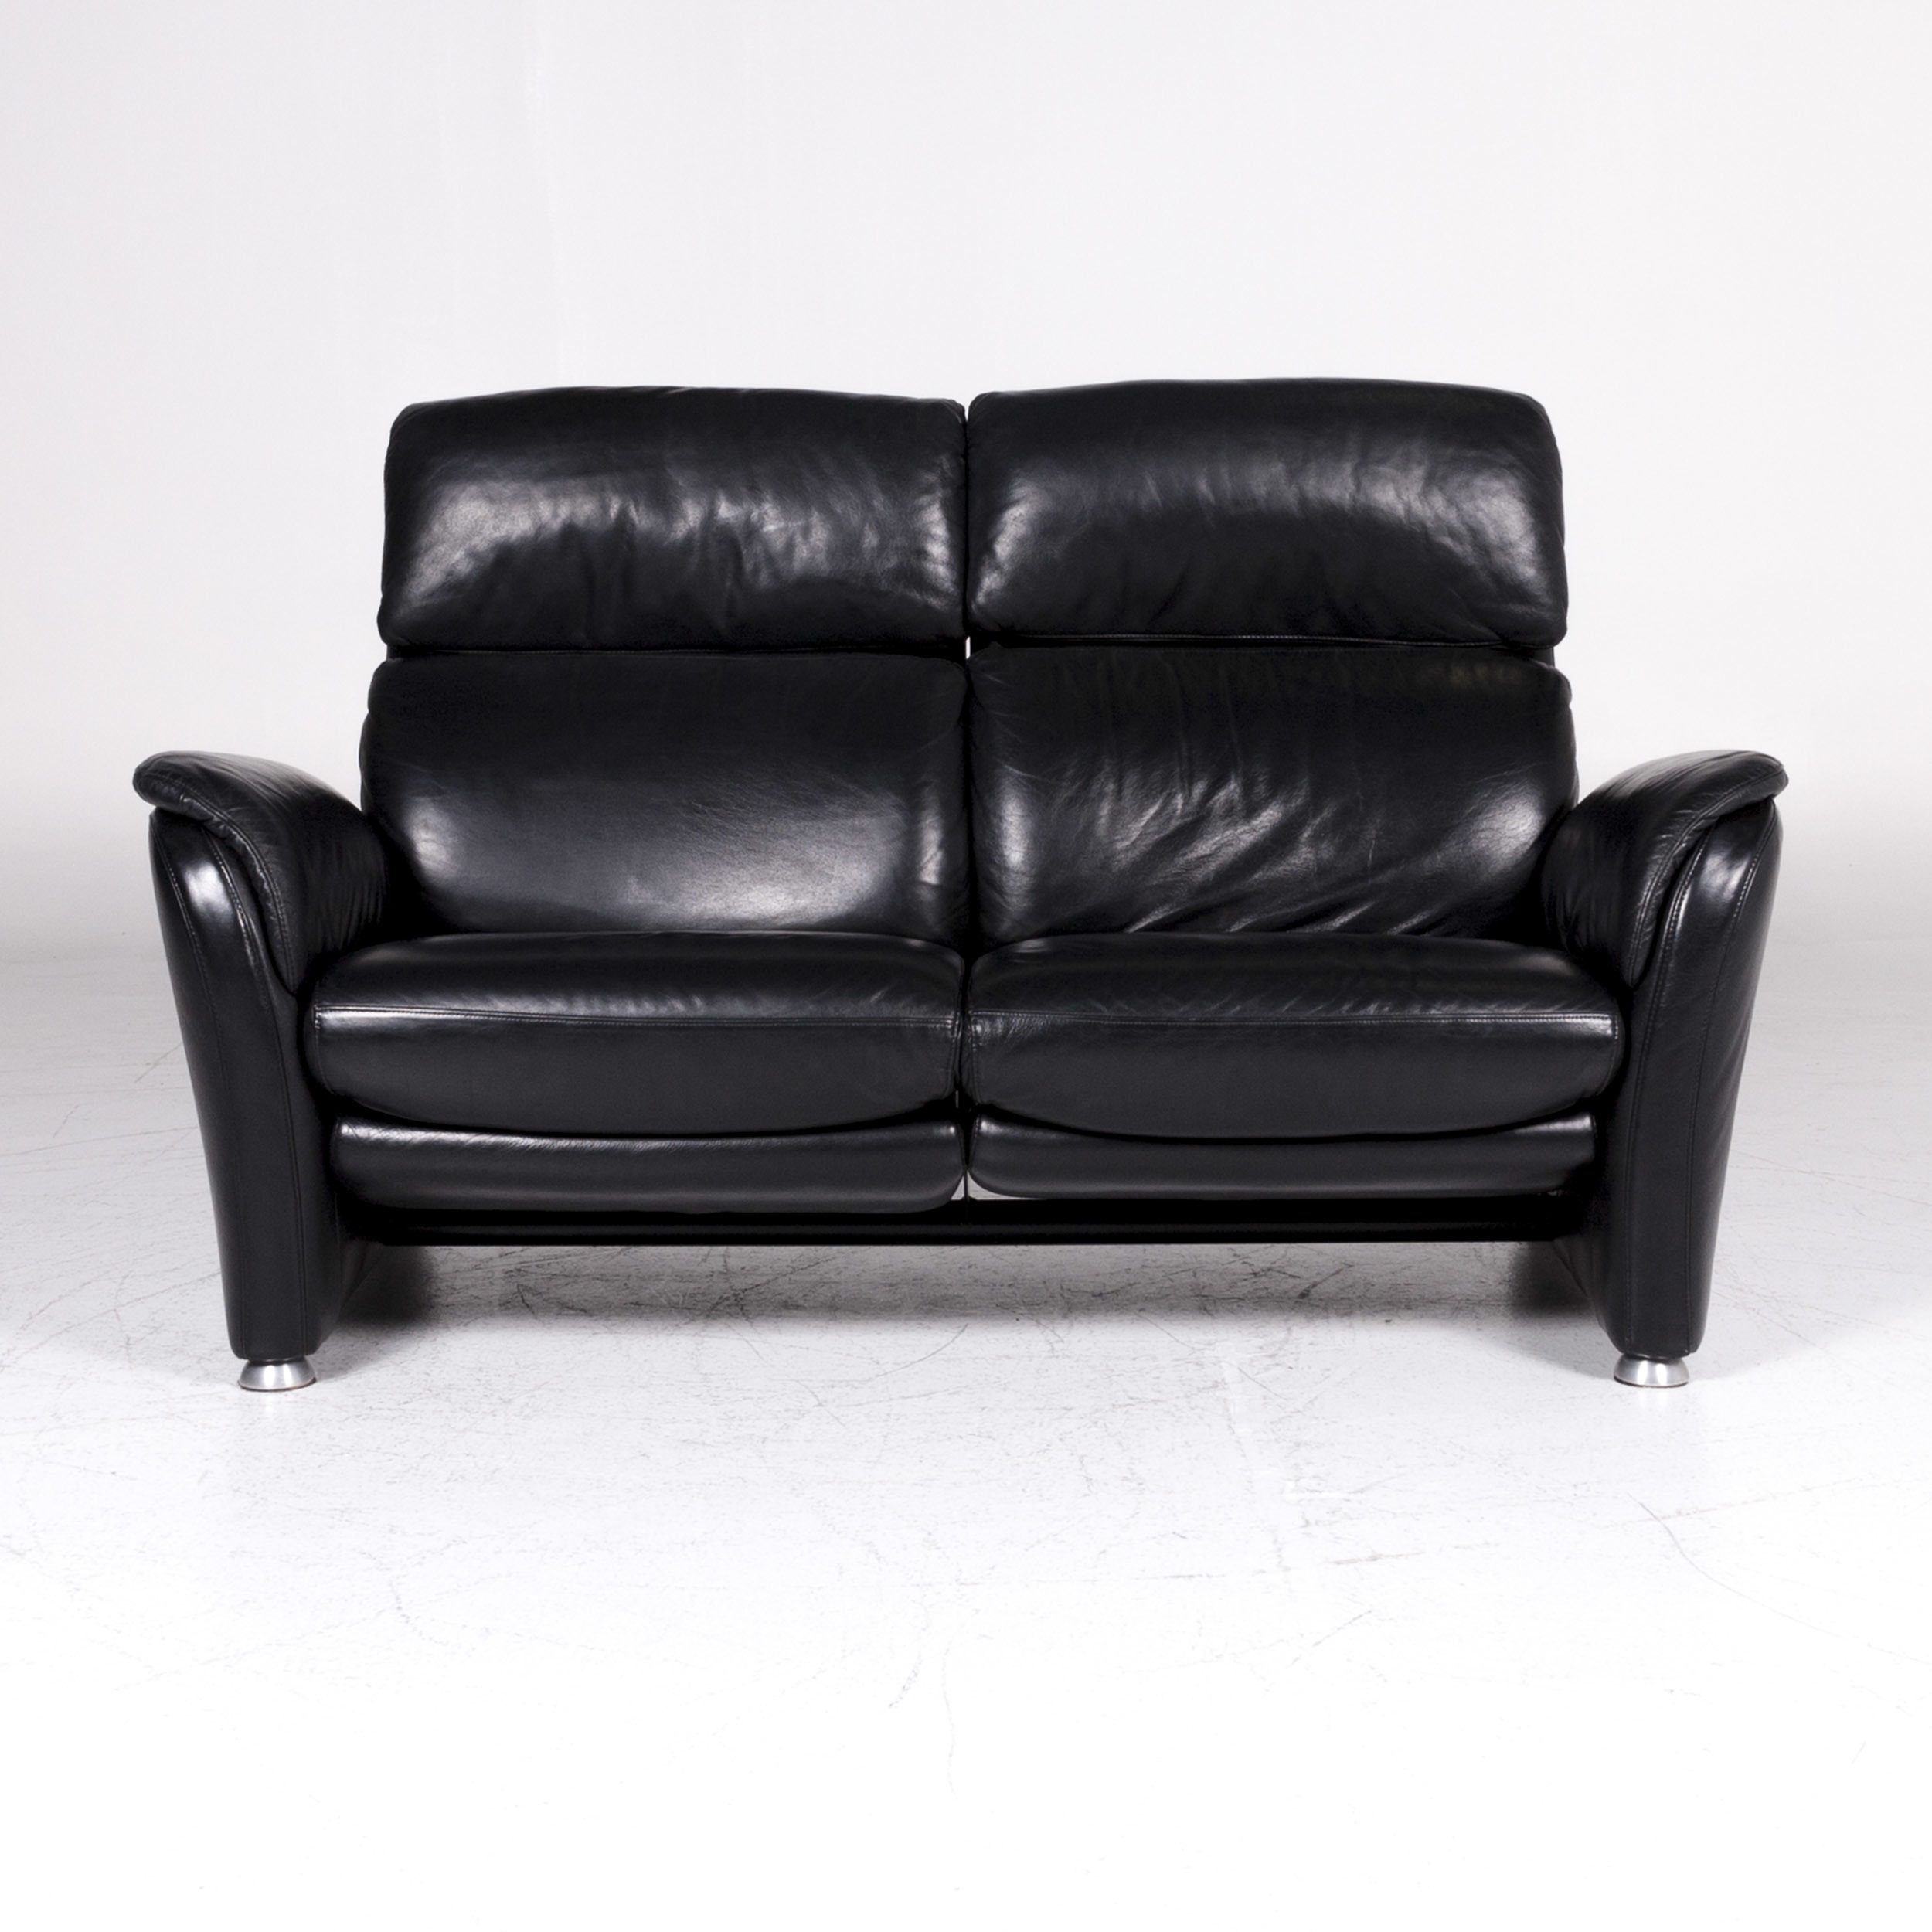 Willi Schillig Ecksofa Longlife Leder Willi Schillig Designer Leather Sofa Black Two Seater Couch Relax Function 9200